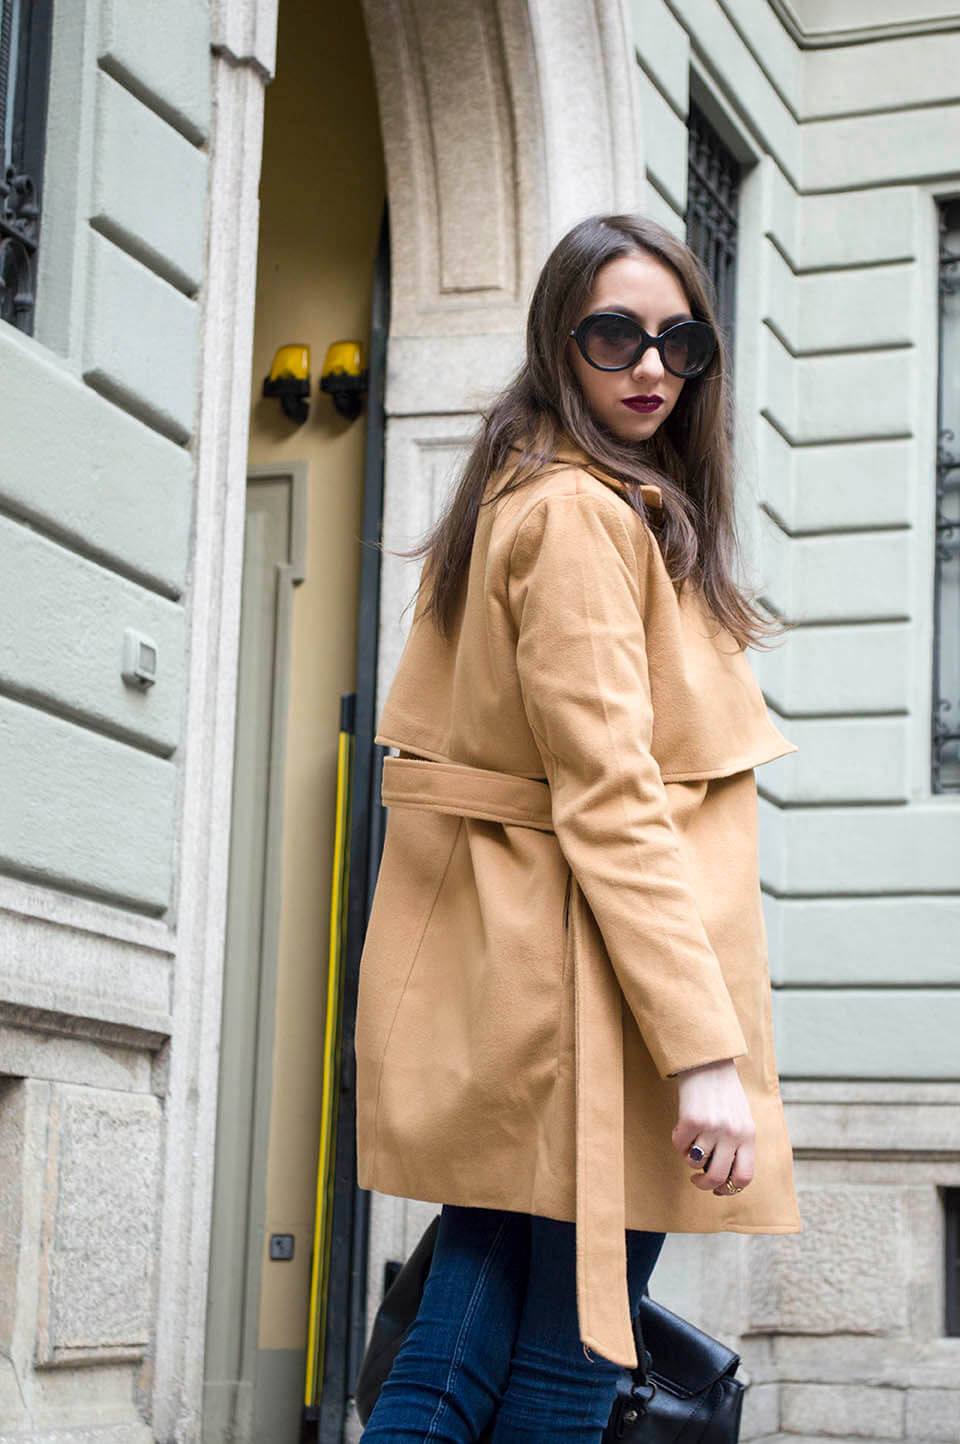 Denim and camel coat - fall outfit